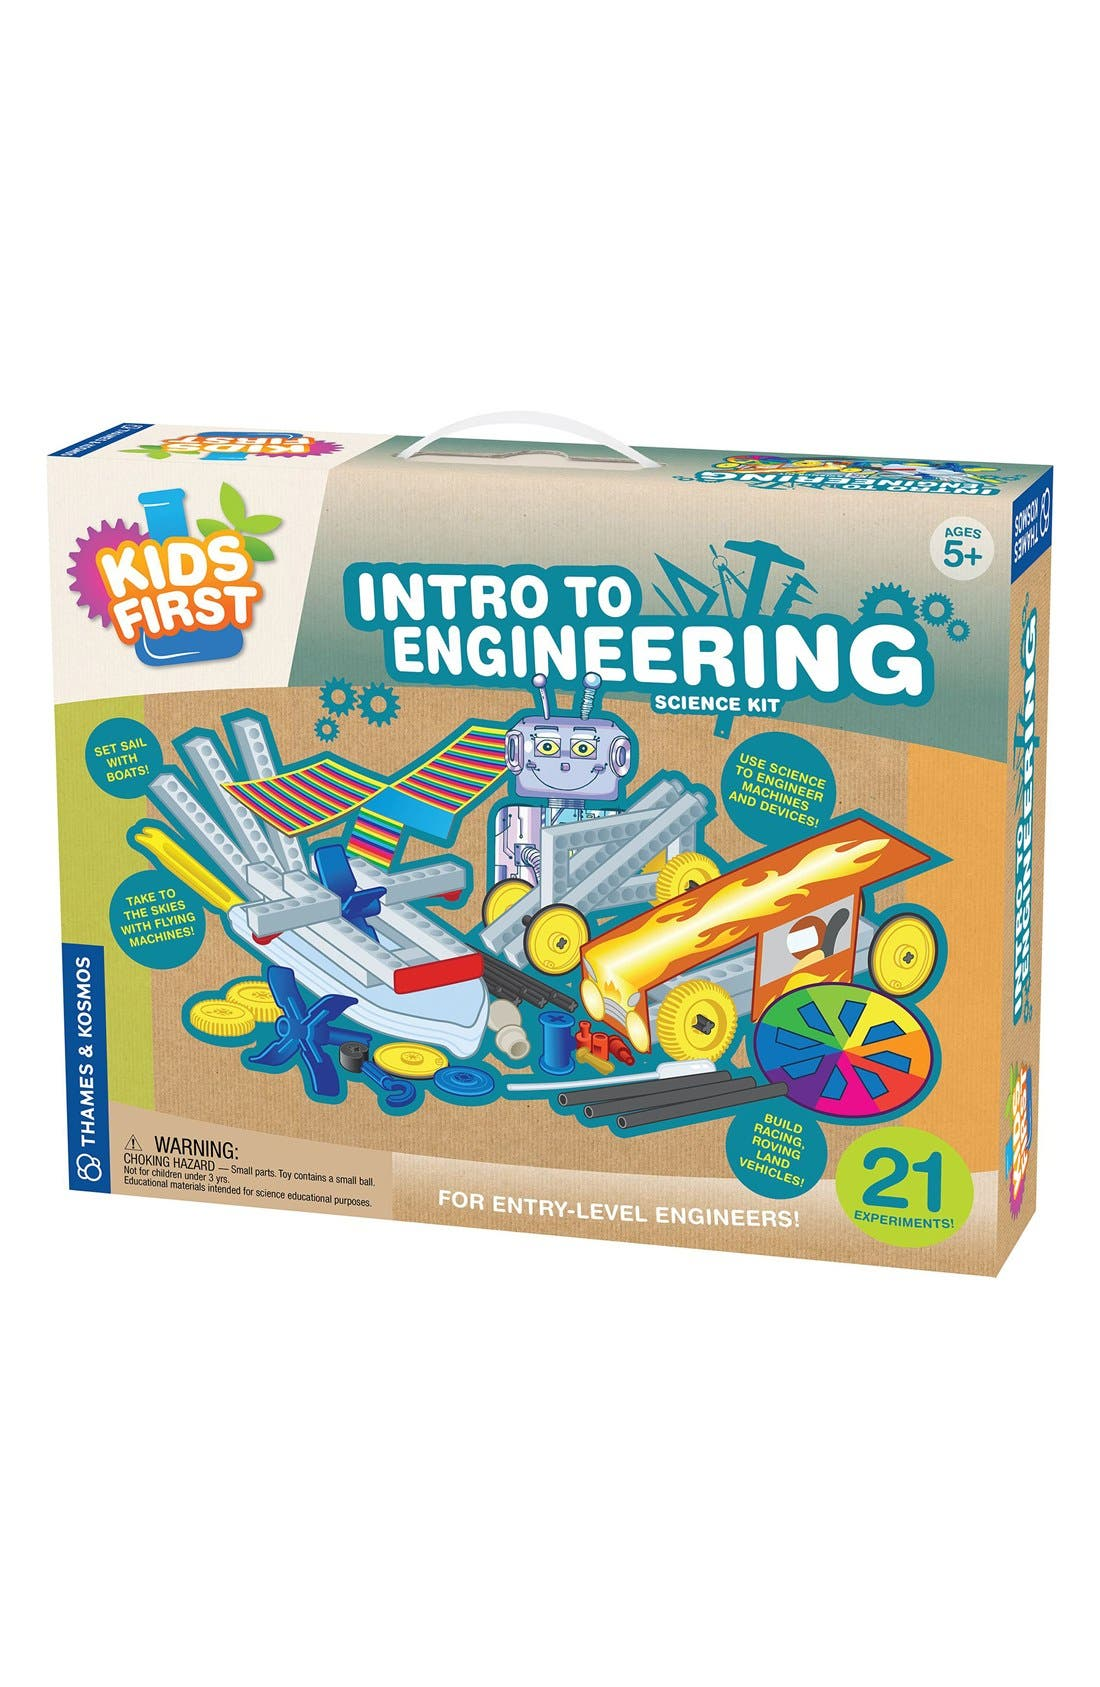 THAMES & KOSMOS 'Intro To Engineering' Science Kit